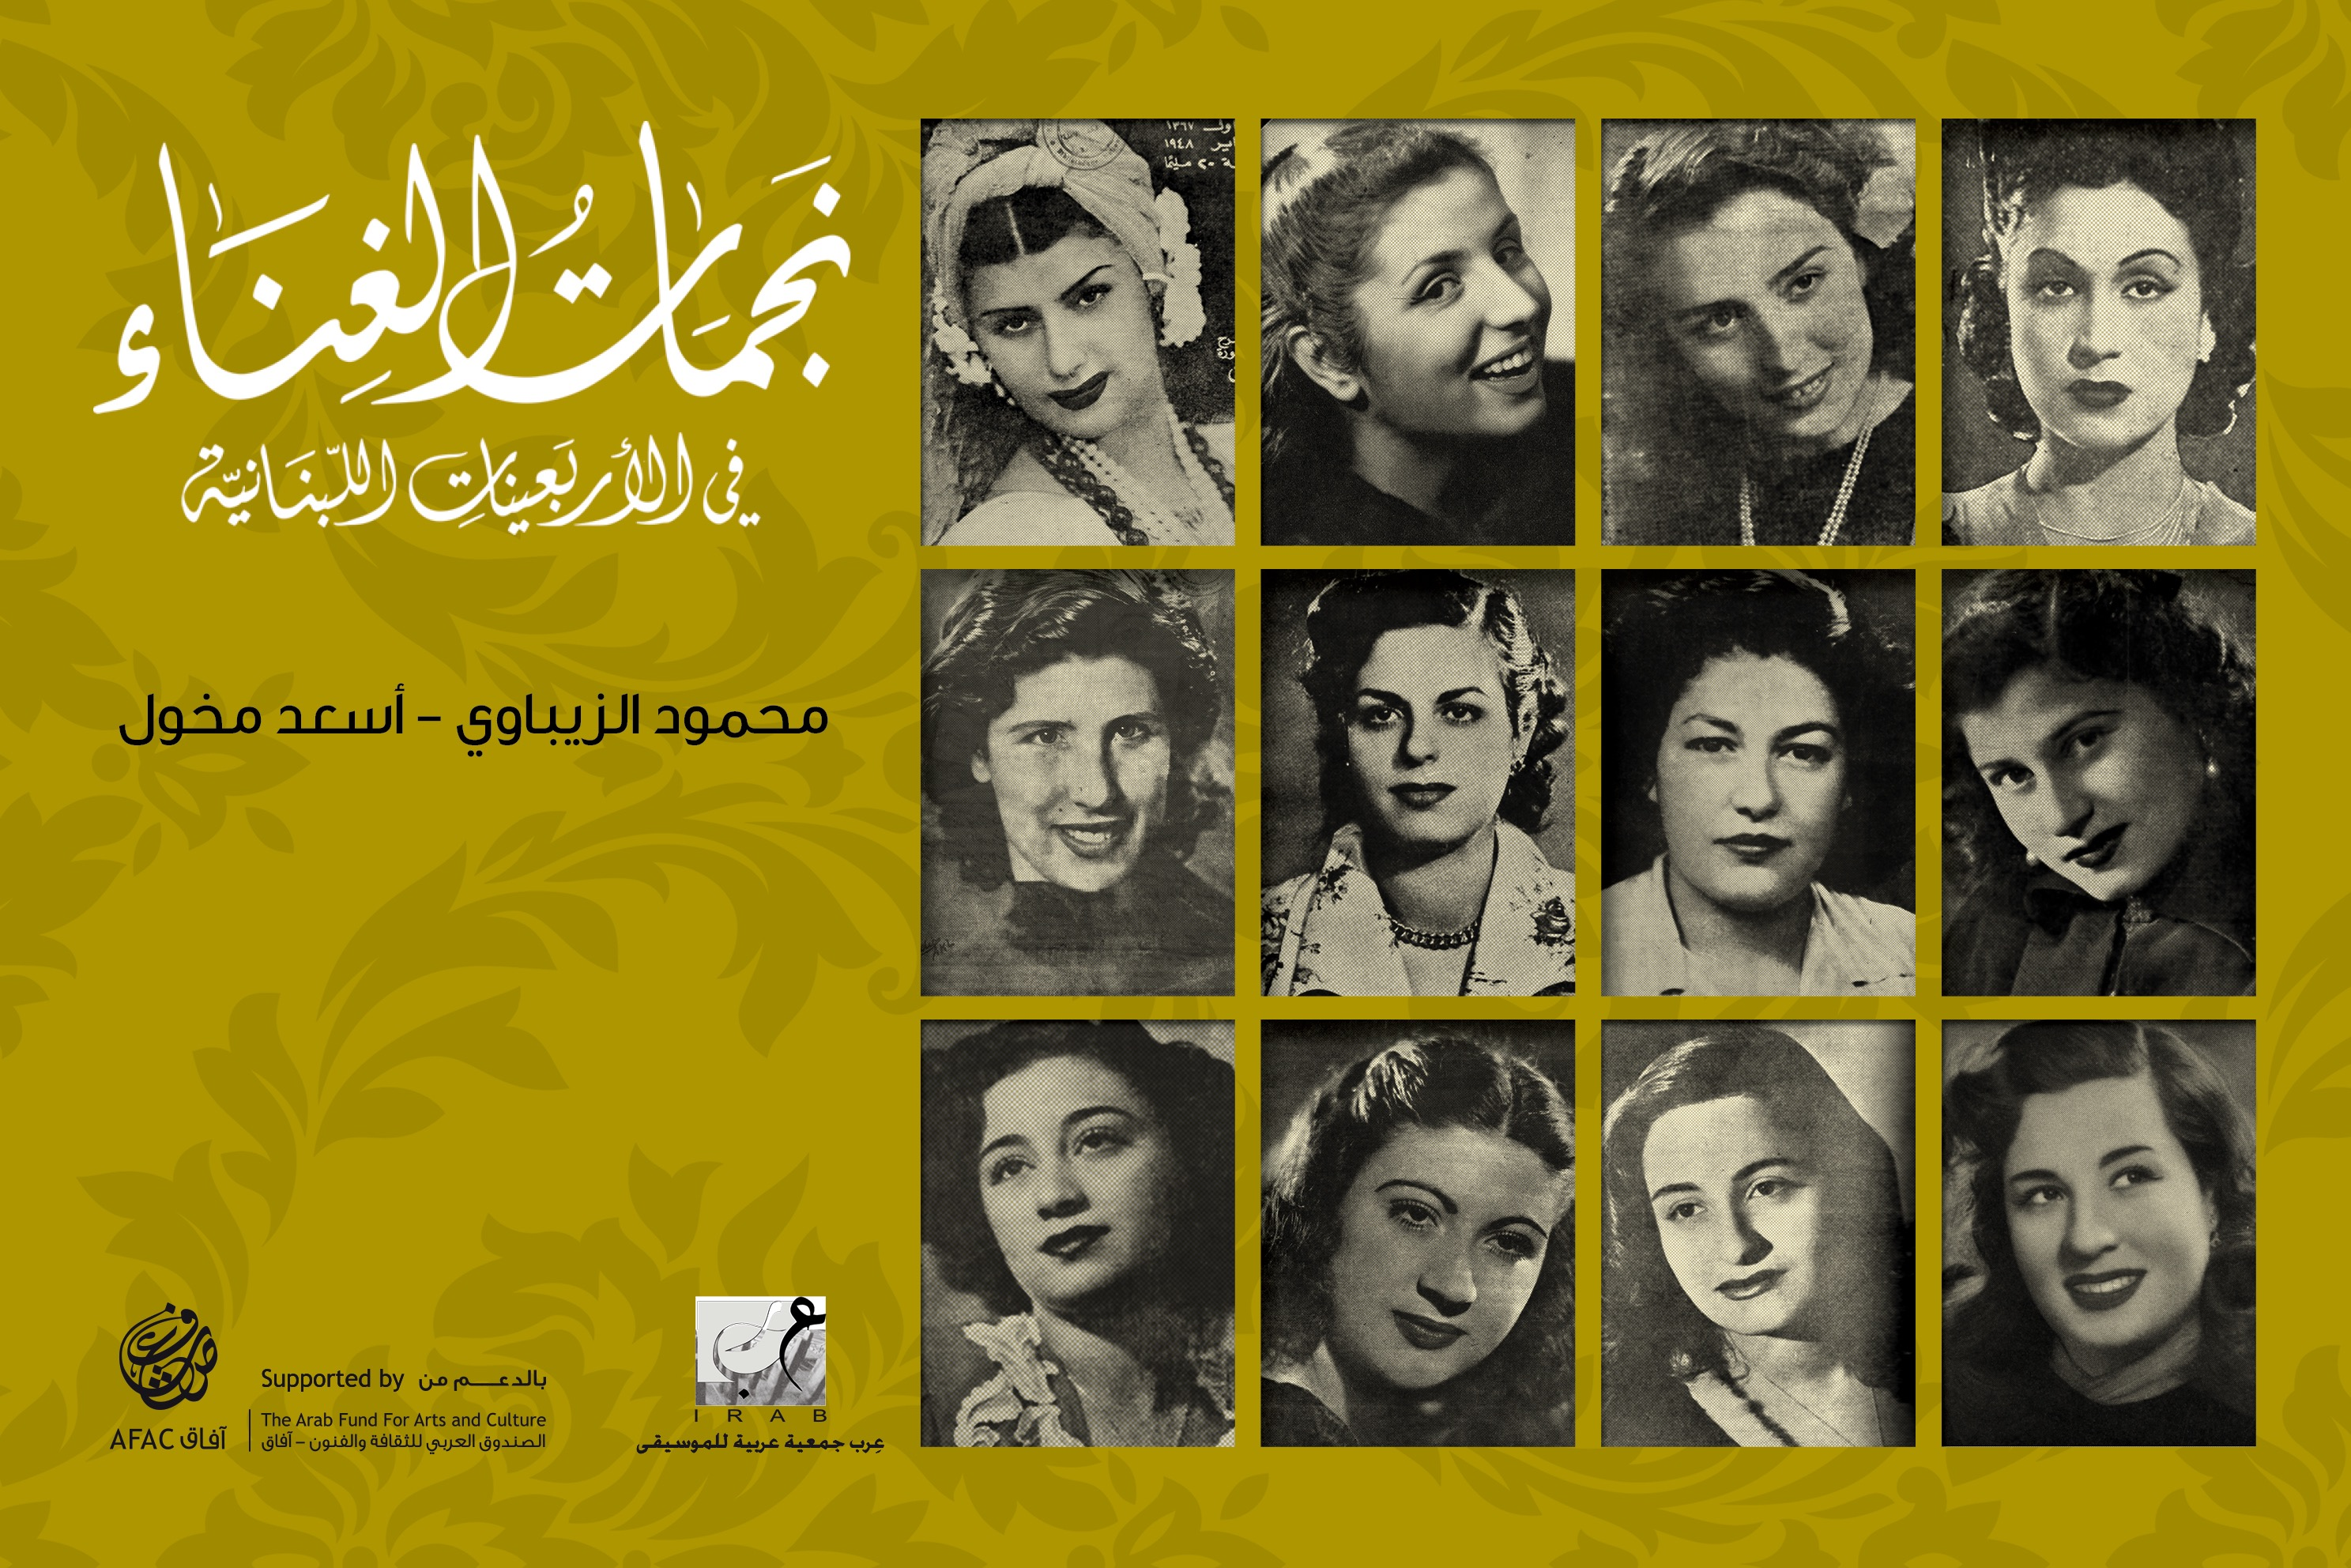 FEMALE SINGING STARS OF THE LEBANESE 40s | Dar El-Nimer